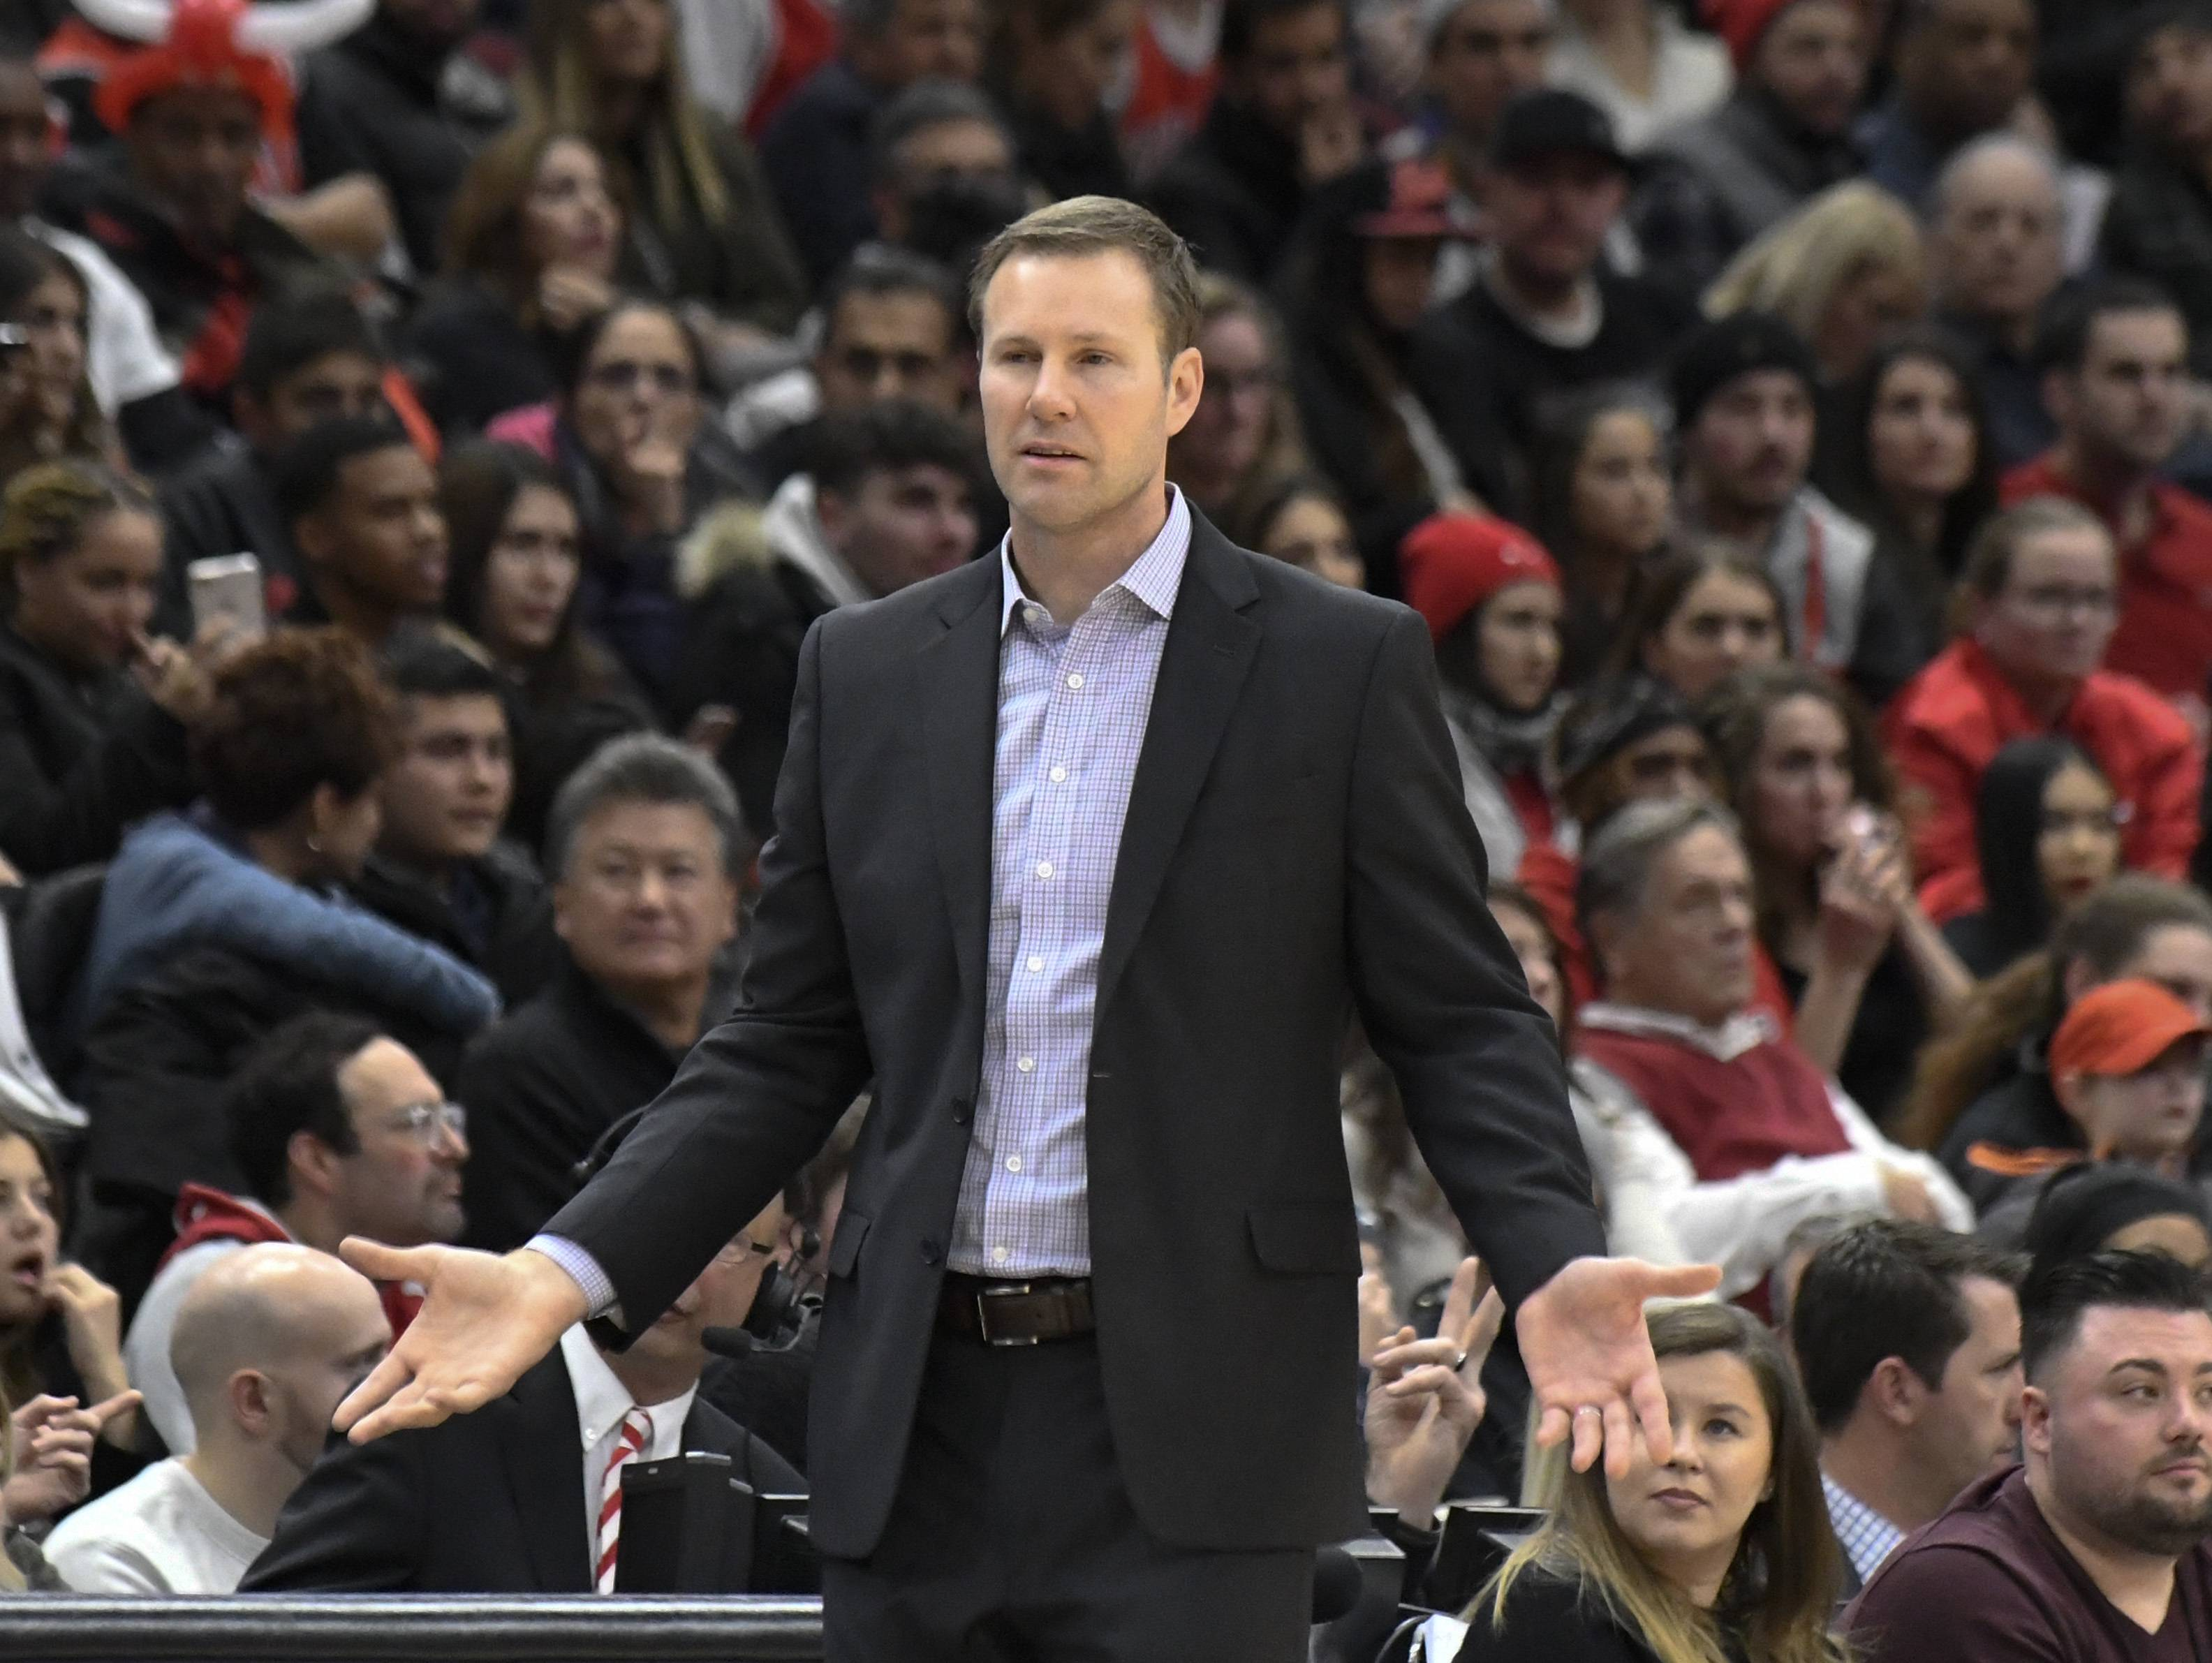 Chicago Bulls head coach Fred Hoiberg questions a call during the second half of an NBA basketball game, Monday, Jan. 1, 2018, in Chicago. The Trail Blazers won 124-120 in overtime.